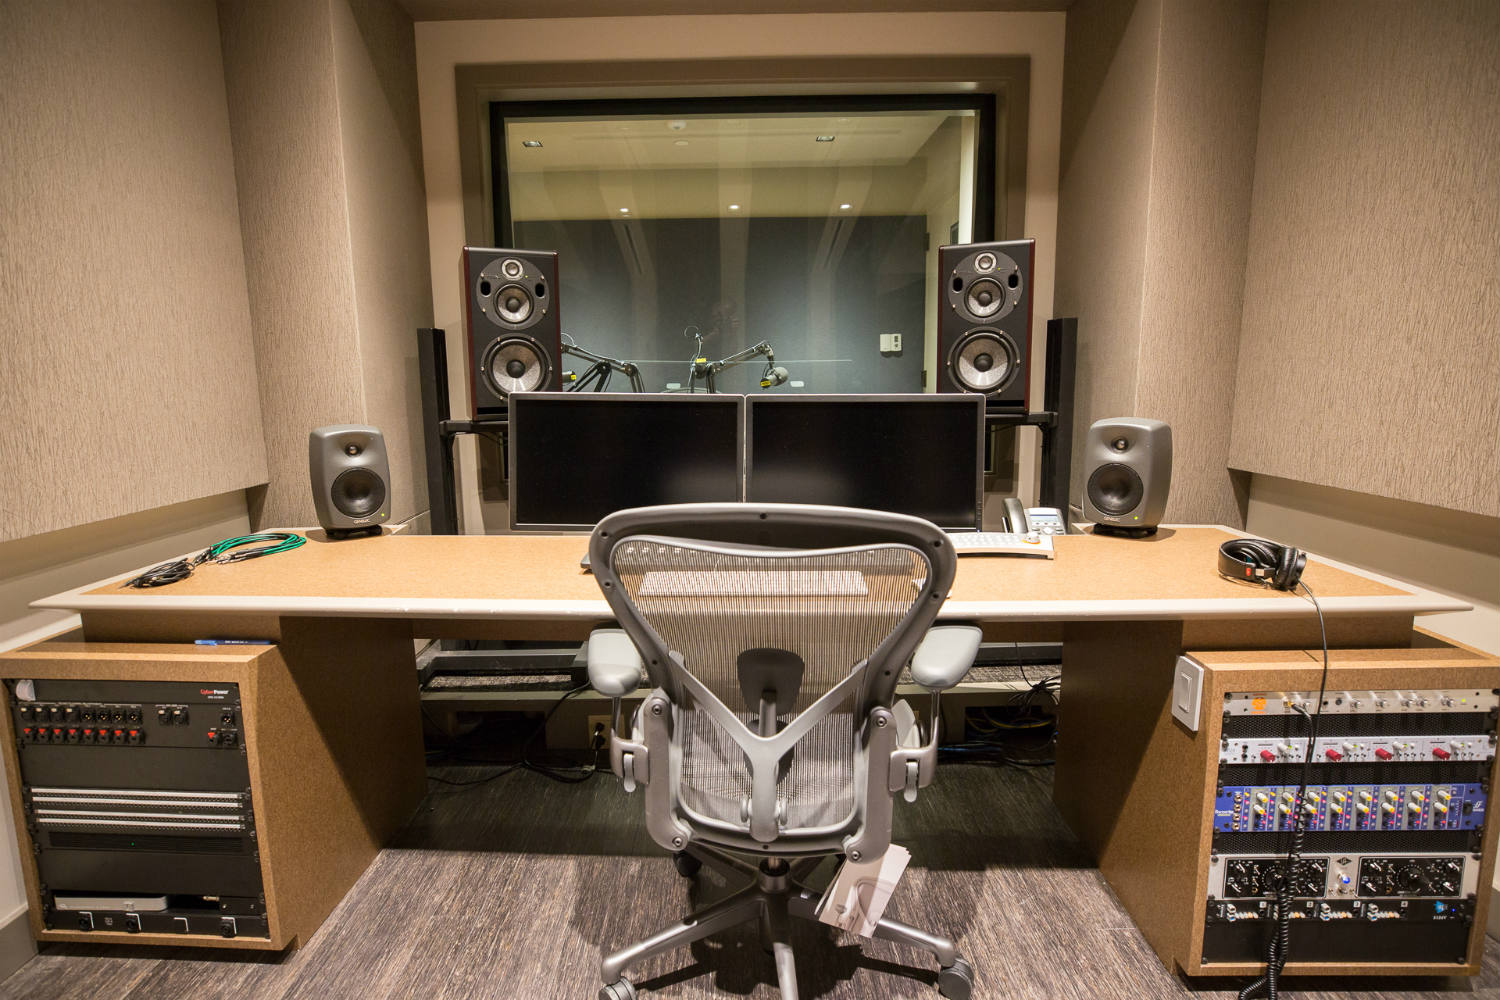 Audible is the world's largest producer/distributor of downloadable audiobooks and other spoken-word entertainment. WSDG was commissioned to design their new state-of-the-art recording studio complex. Control Room B Front